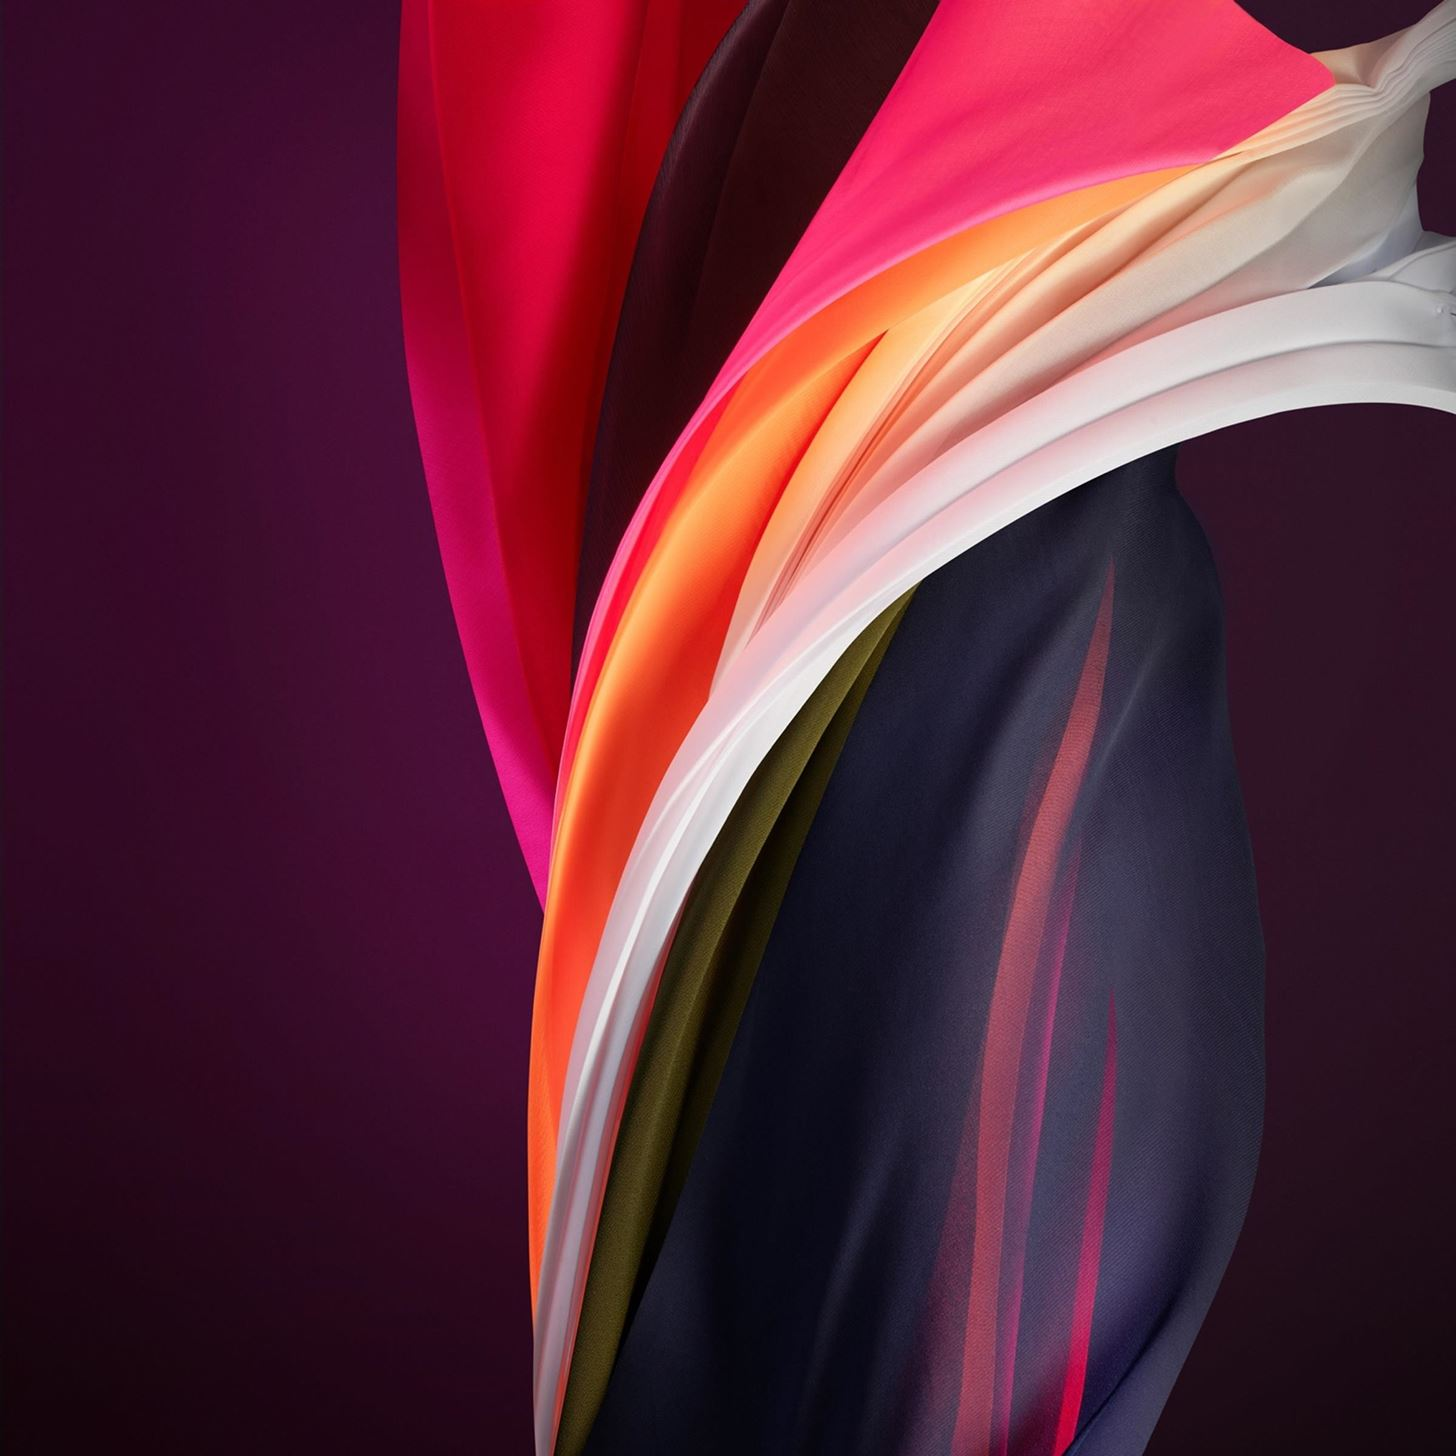 Get the 2020 iPhone SE's Exclusive Wallpapers on Any Phone